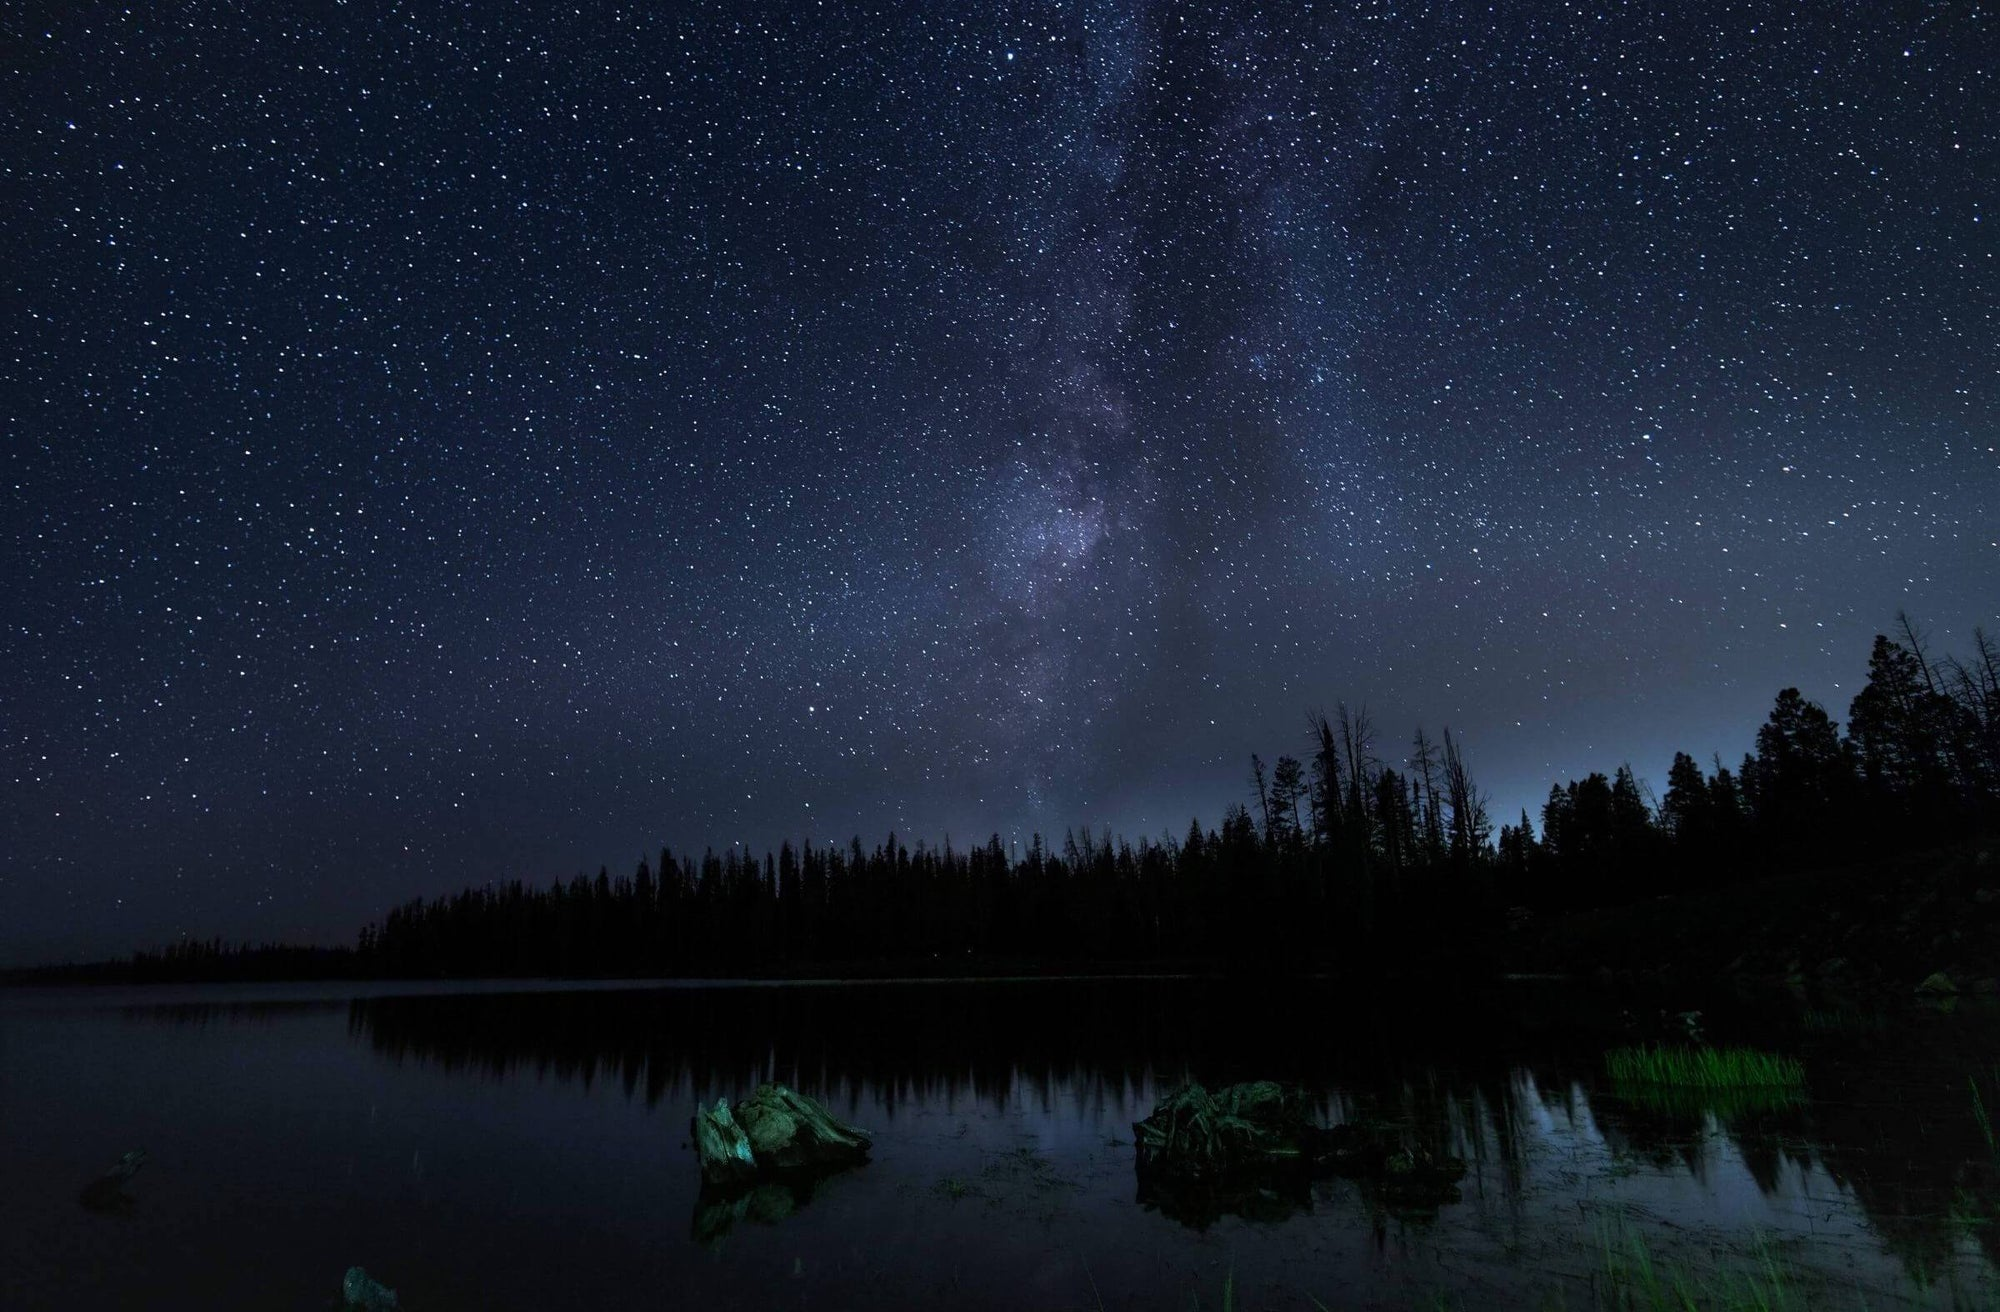 starry night sky over woods and lake